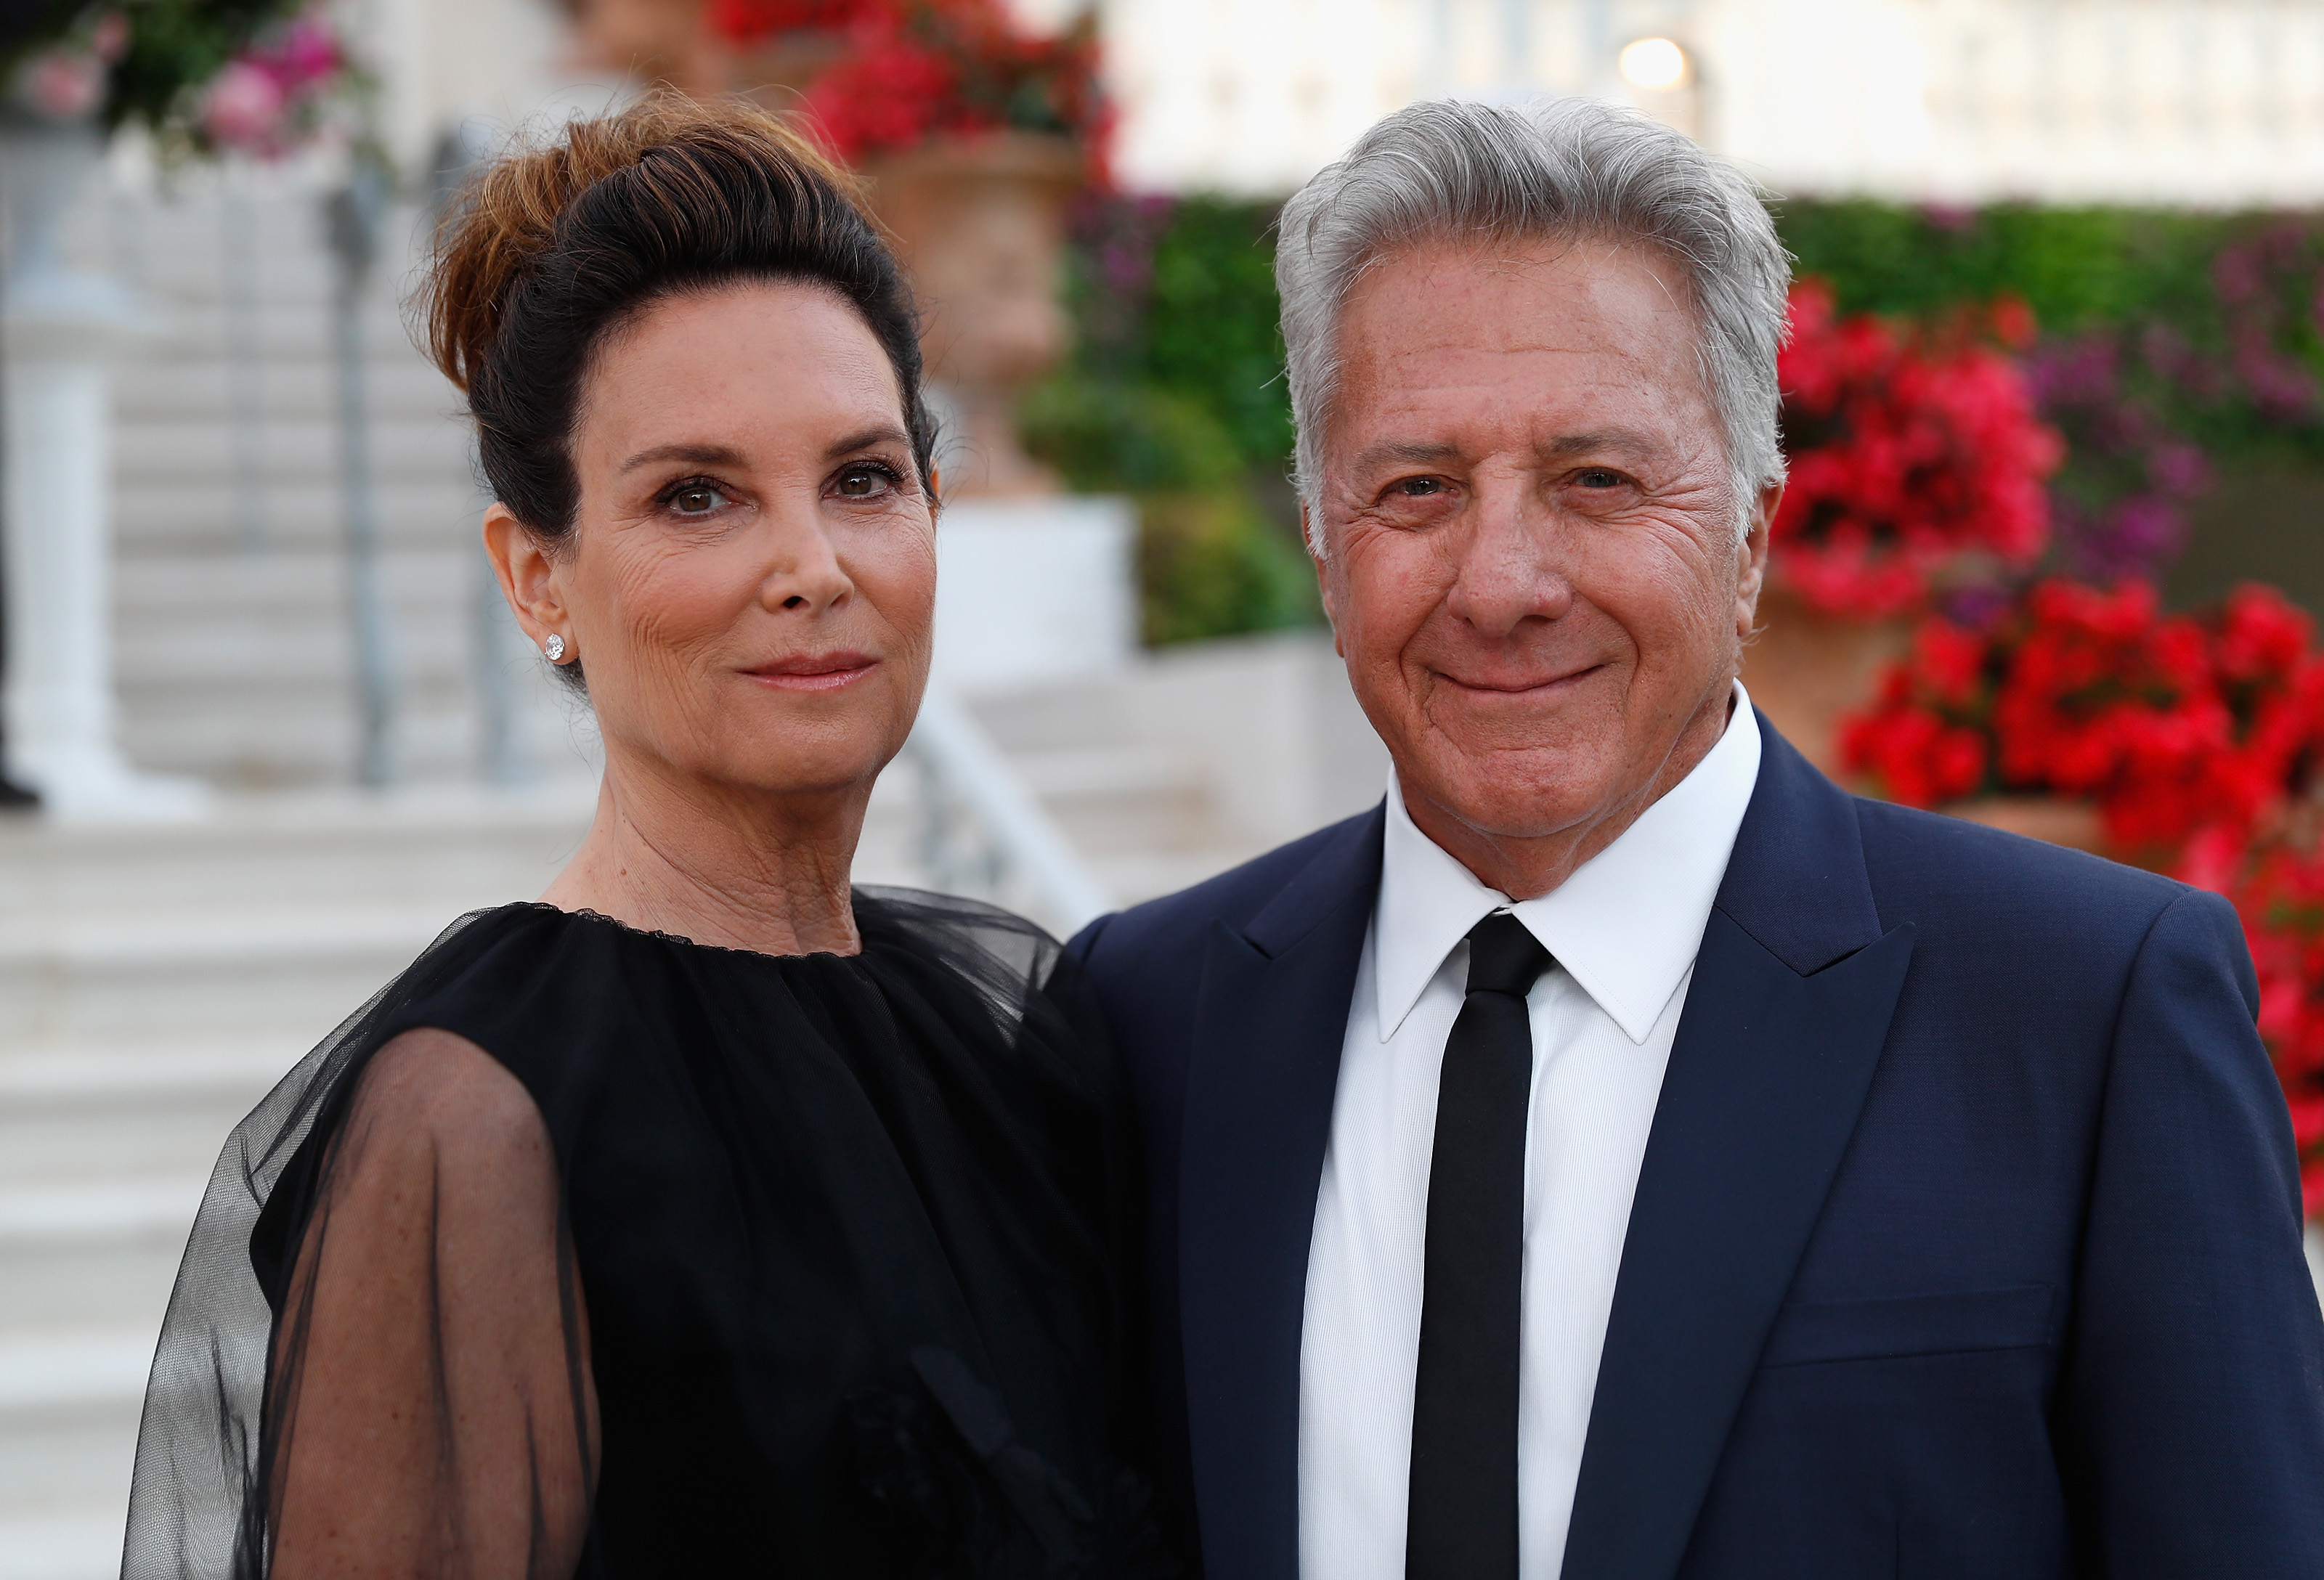 Dustin Hoffman S Wife Lisa Dishes On The Secret To Their 37 Year Marriage